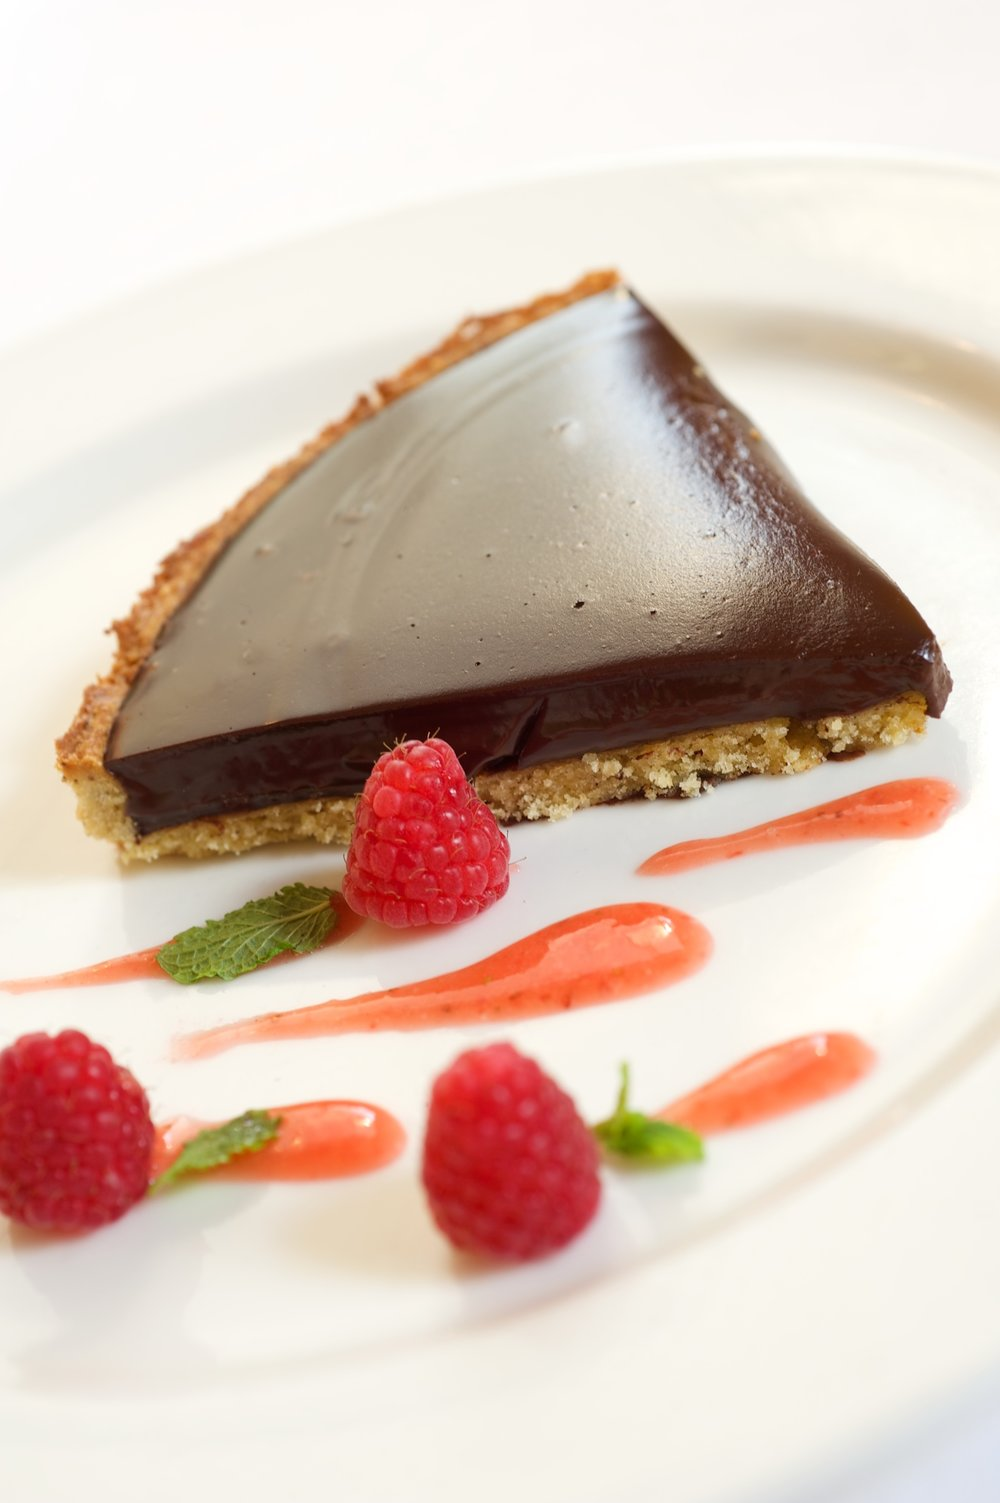 Chocolate Tarte from Bel Canto